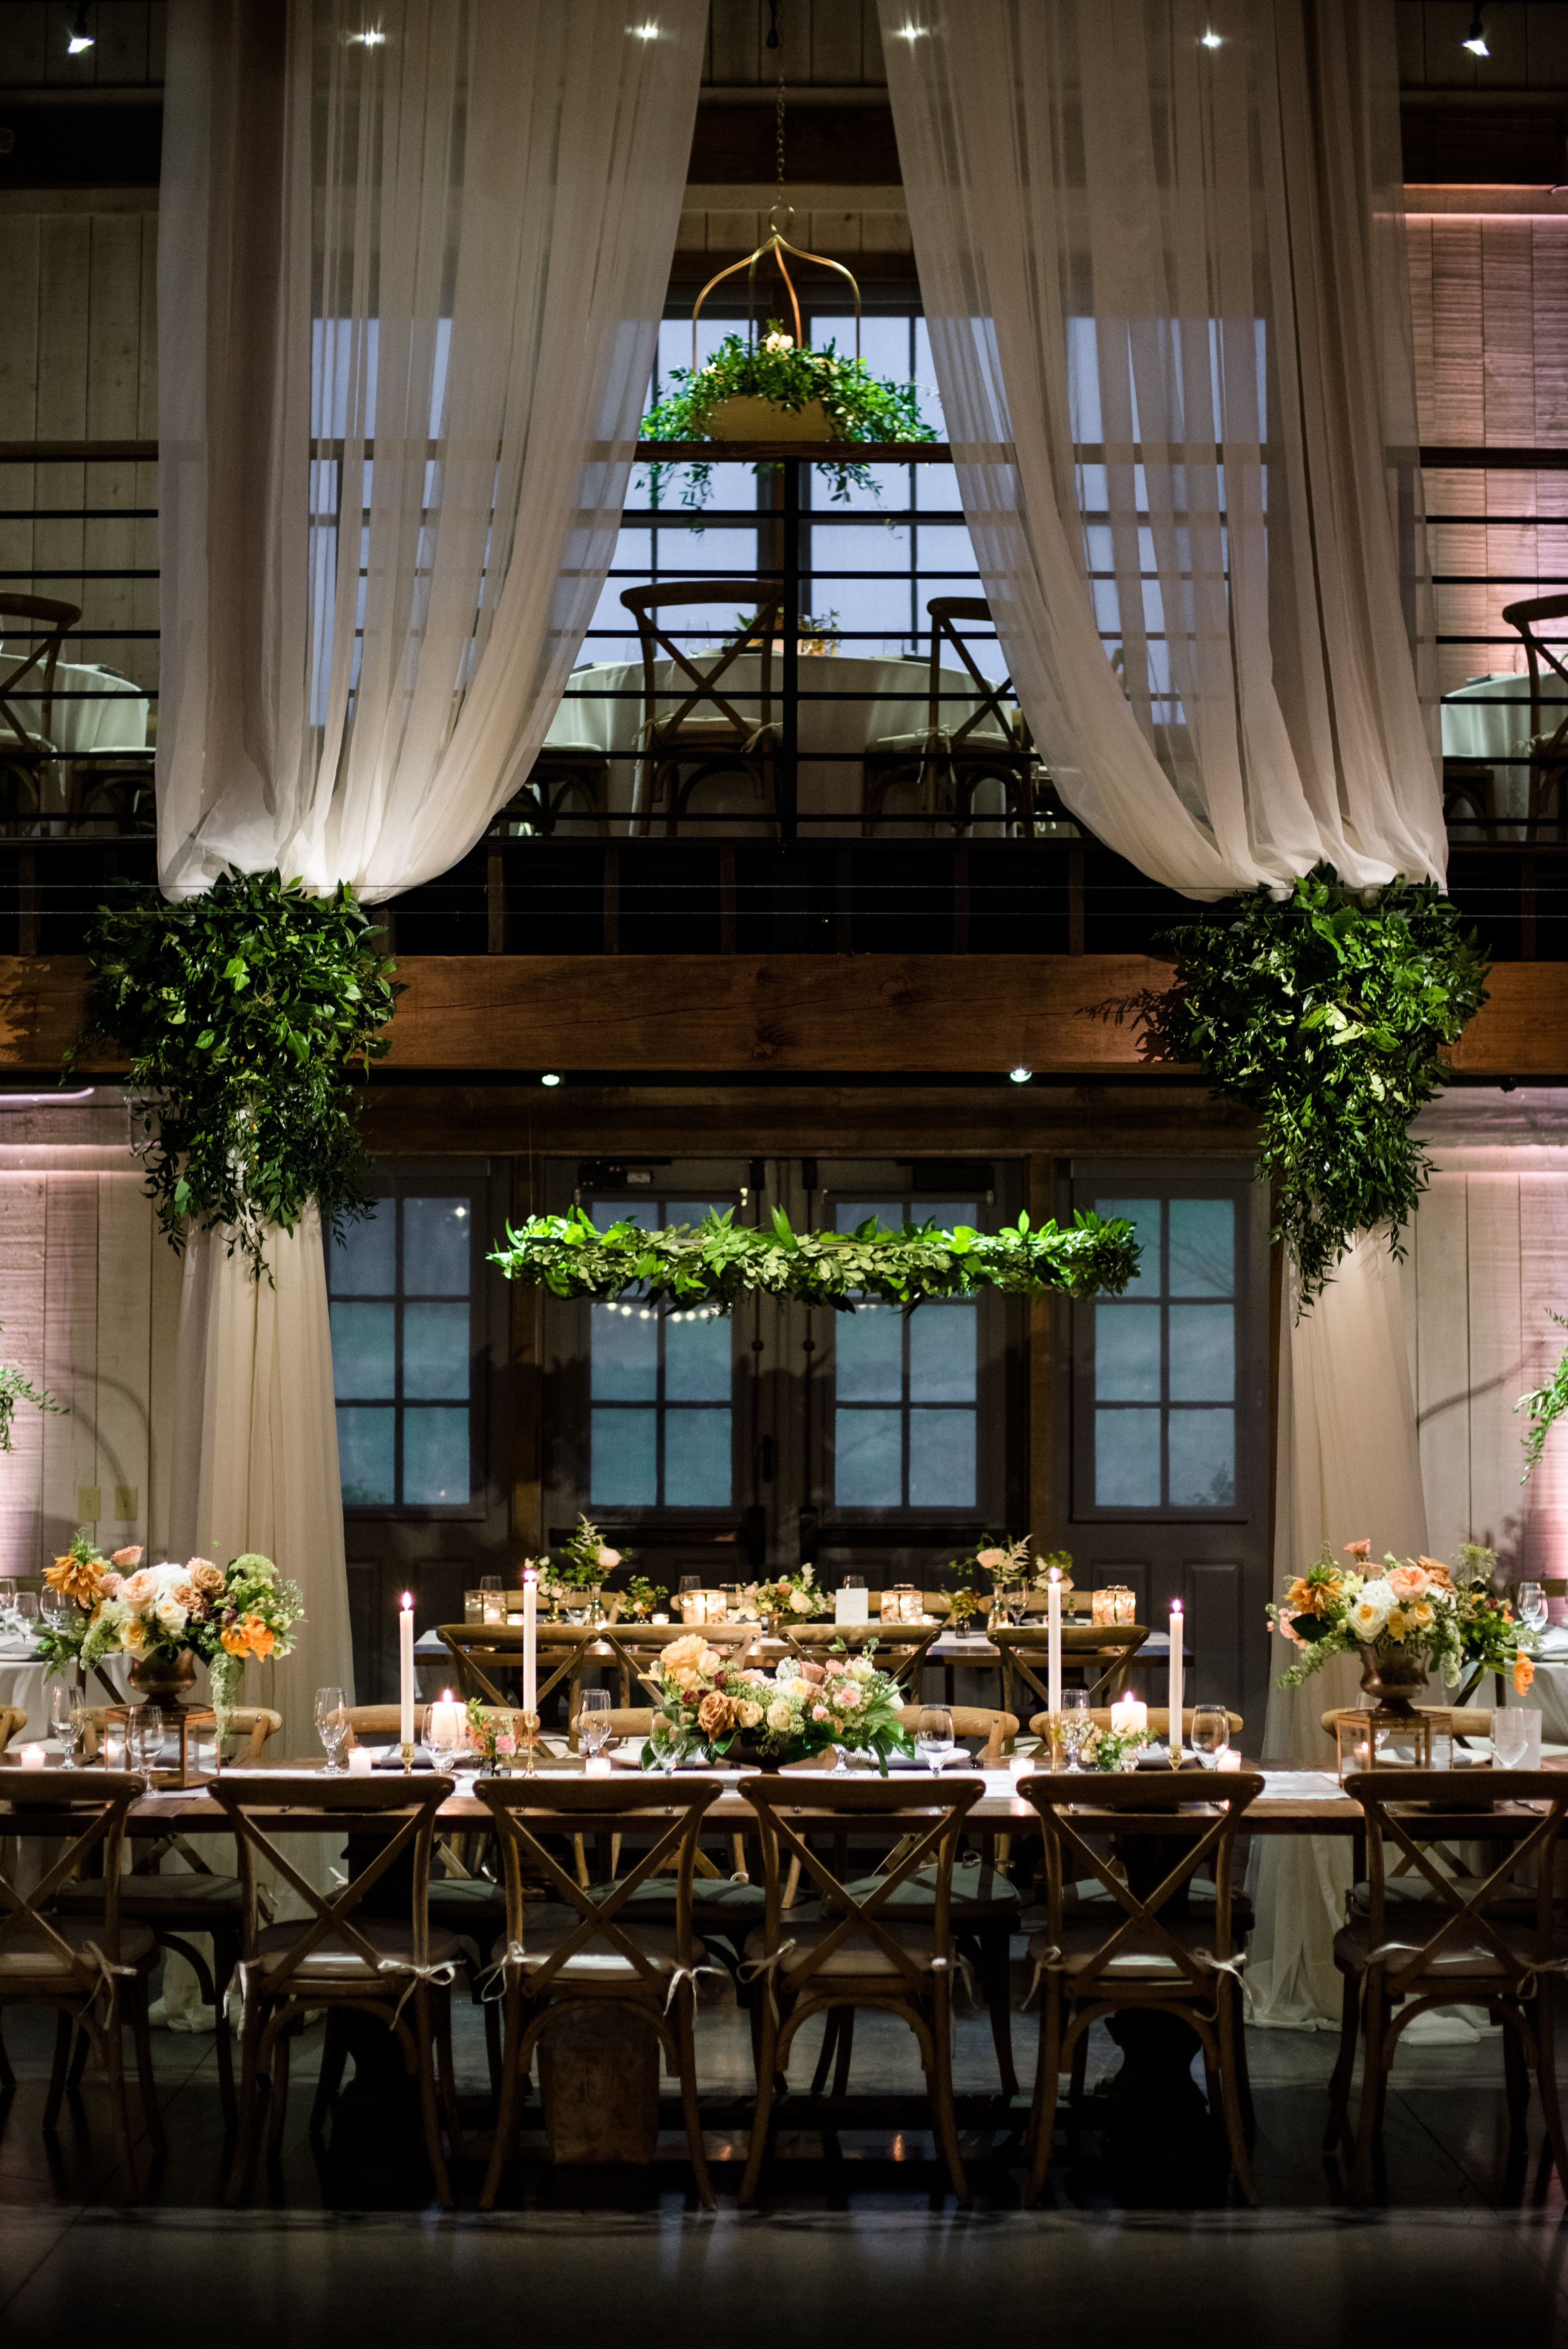 This wedding venue is stunning. See all the details and